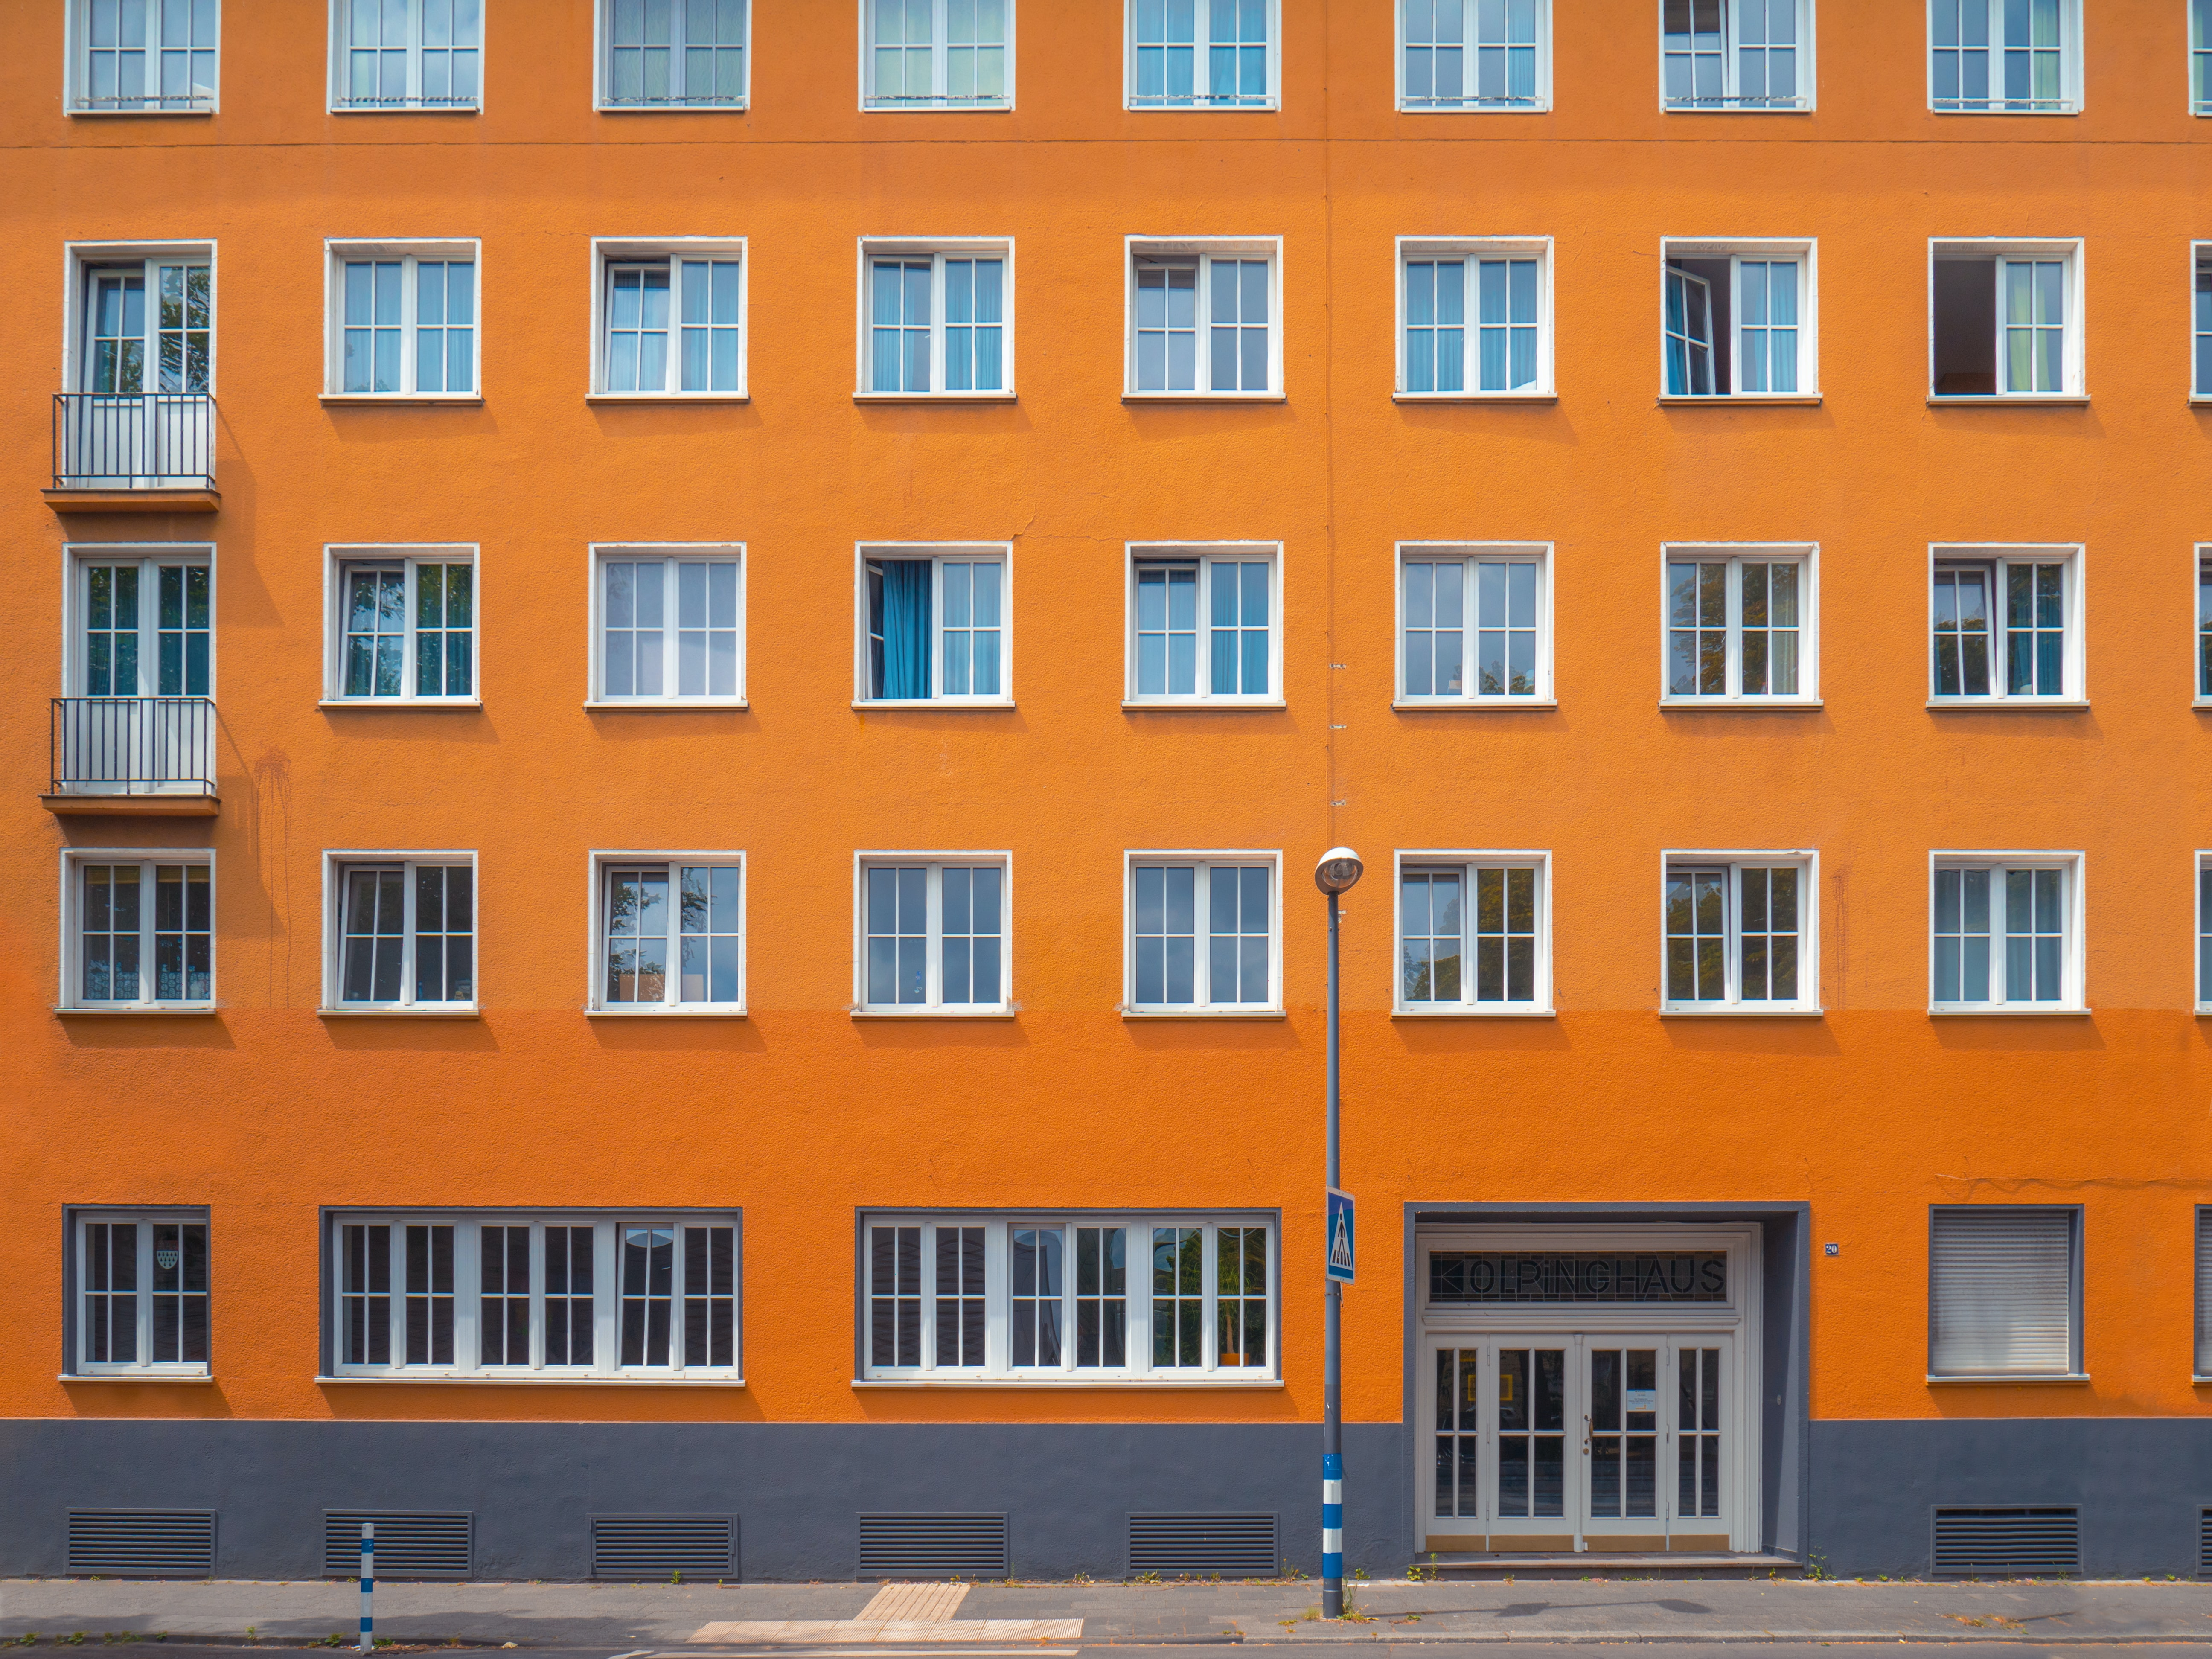 Street view of orange building in Cologne with white doors and windows